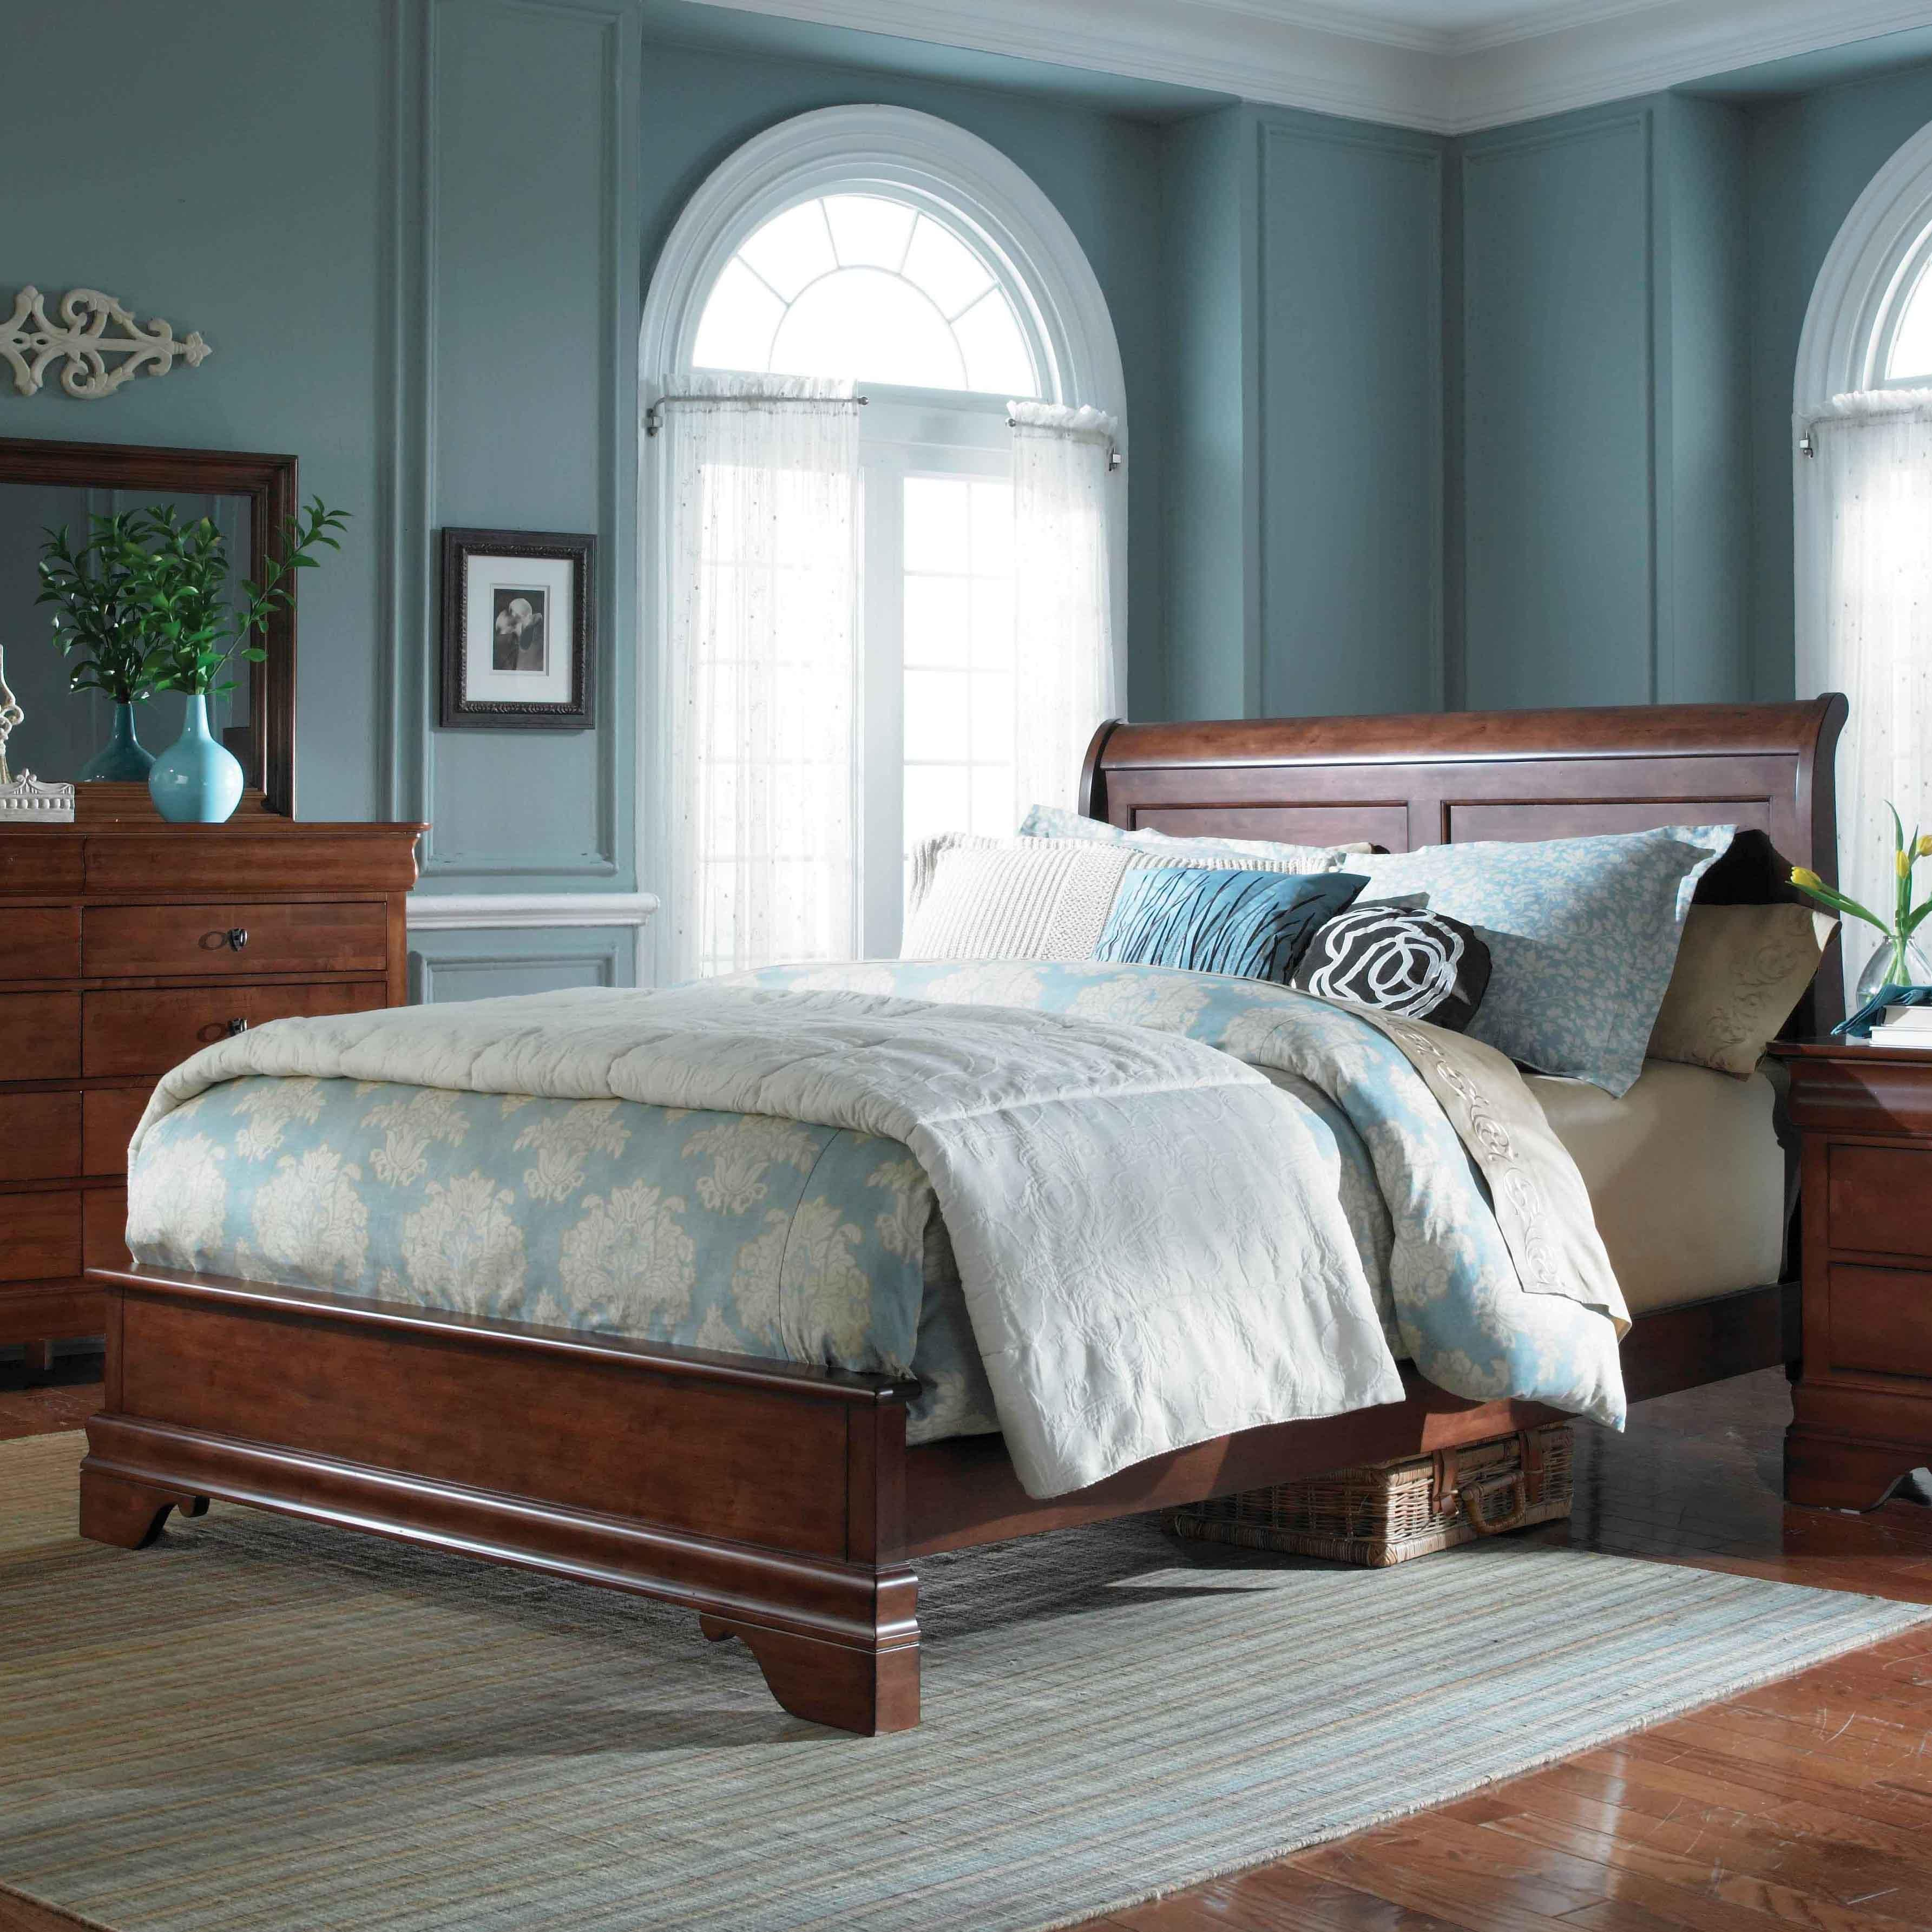 Chateau Royale King Low Profile Sleigh Bed by Kincaid Furniture